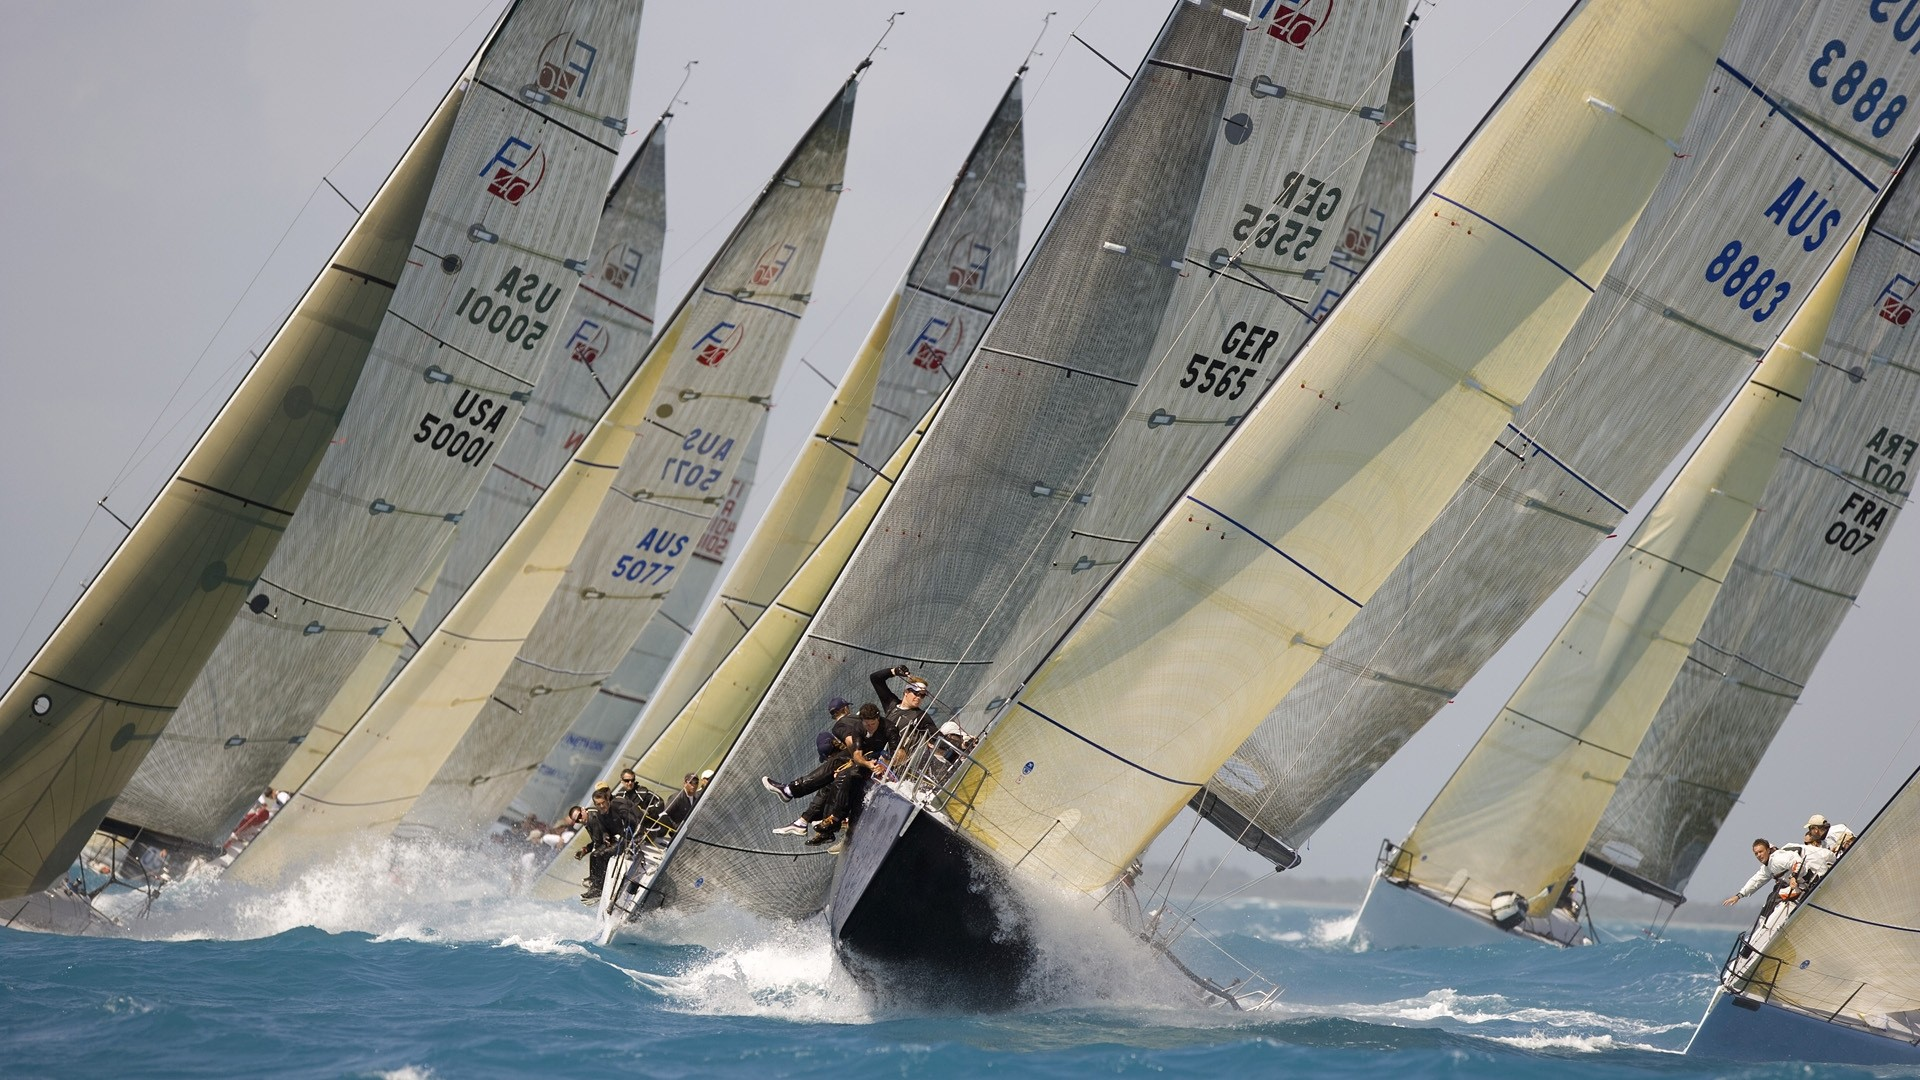 1920x1080 Water Transportation, Sailboat Racing, Sailboat, Sailing Yacht, Yacht  Racing Wallpaper in